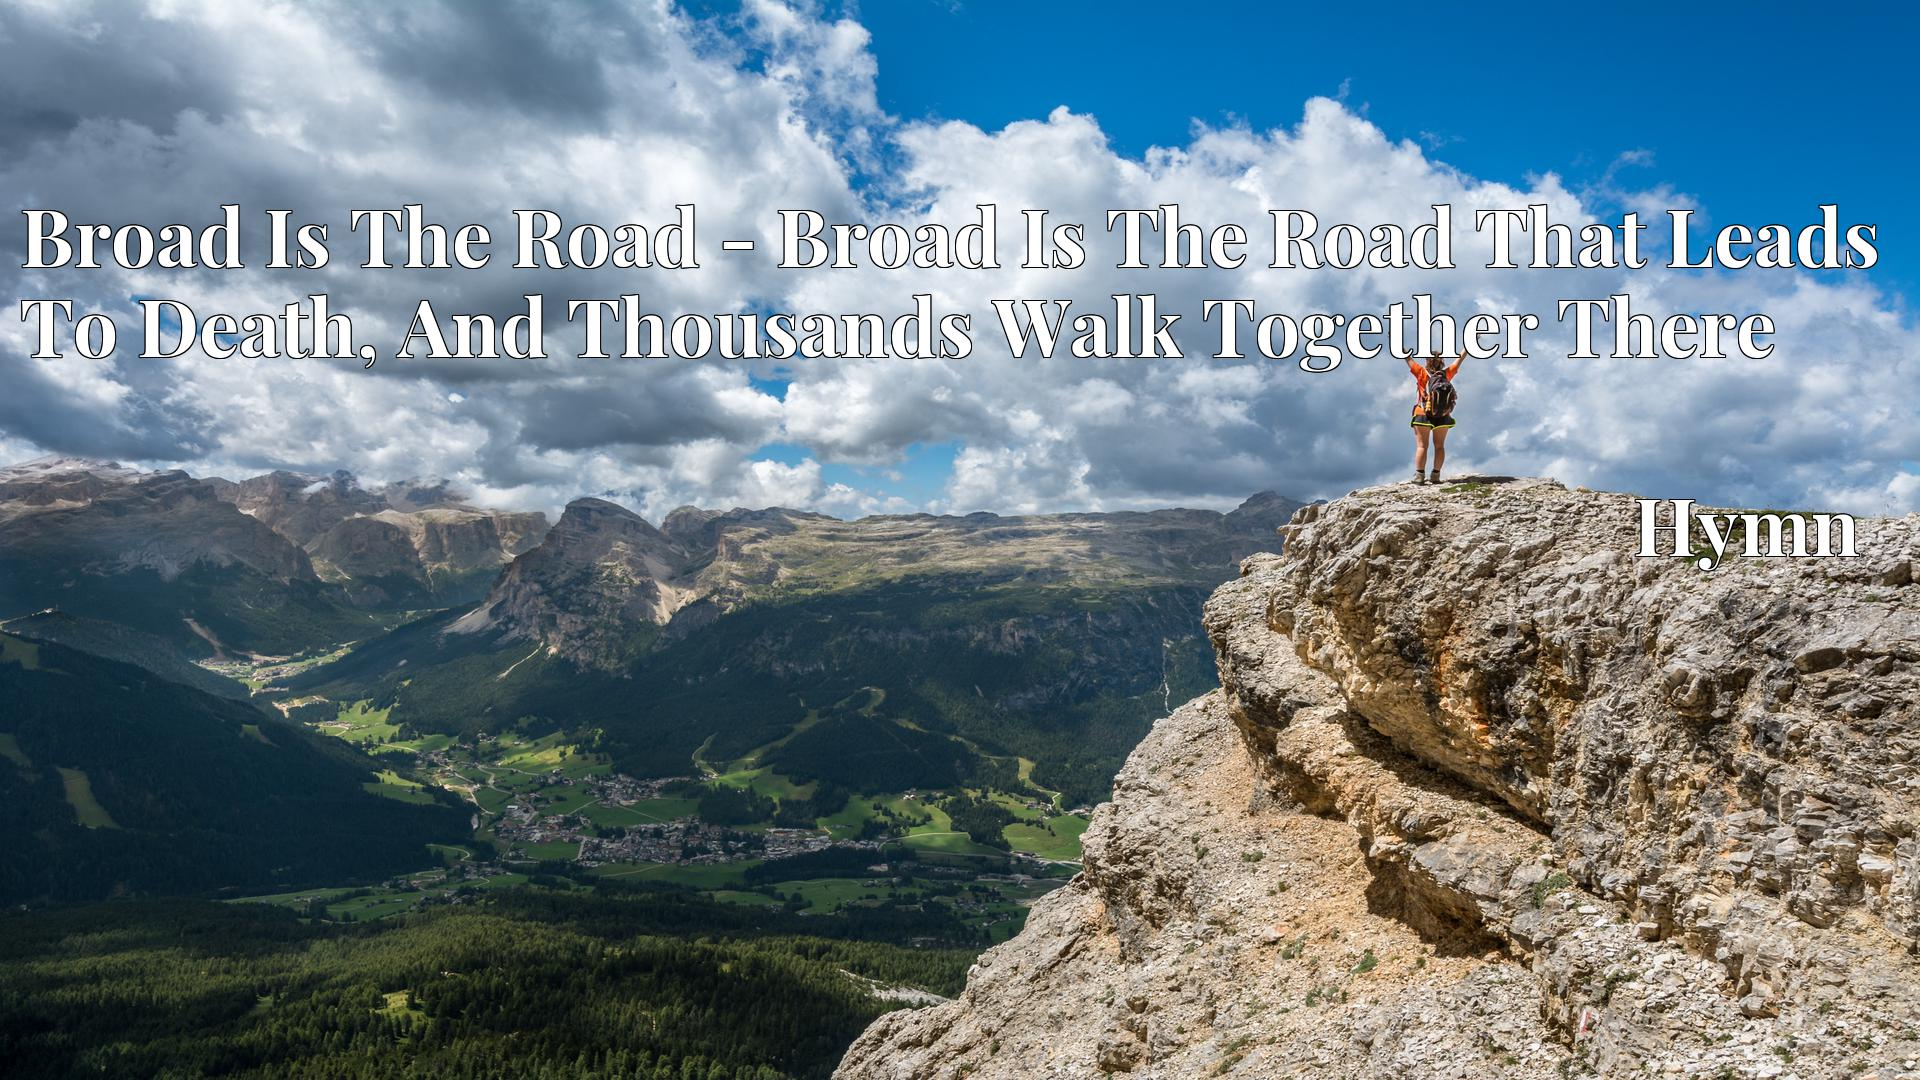 Broad Is The Road - Broad Is The Road That Leads To Death, And Thousands Walk Together There - Hymn